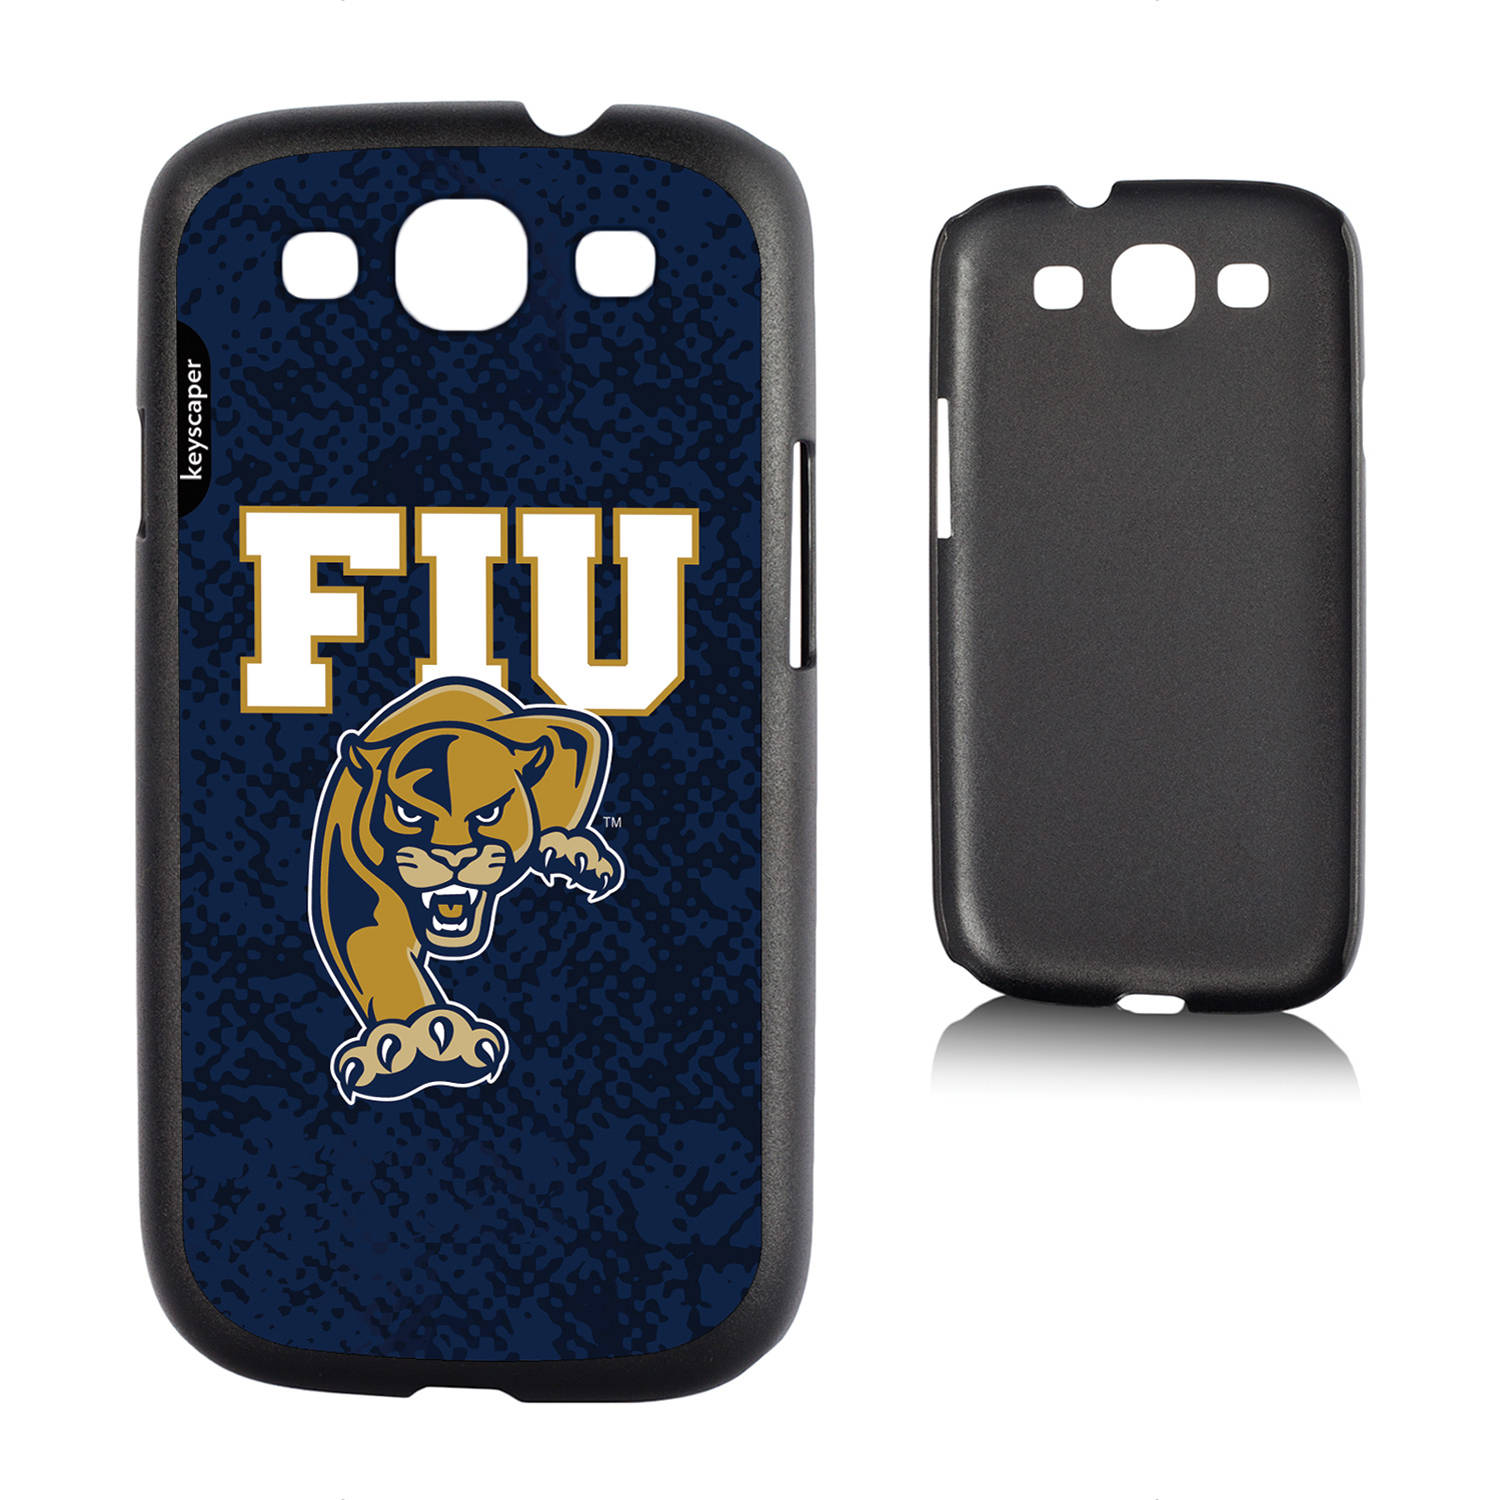 Florida International Galaxy S3 Slim Case